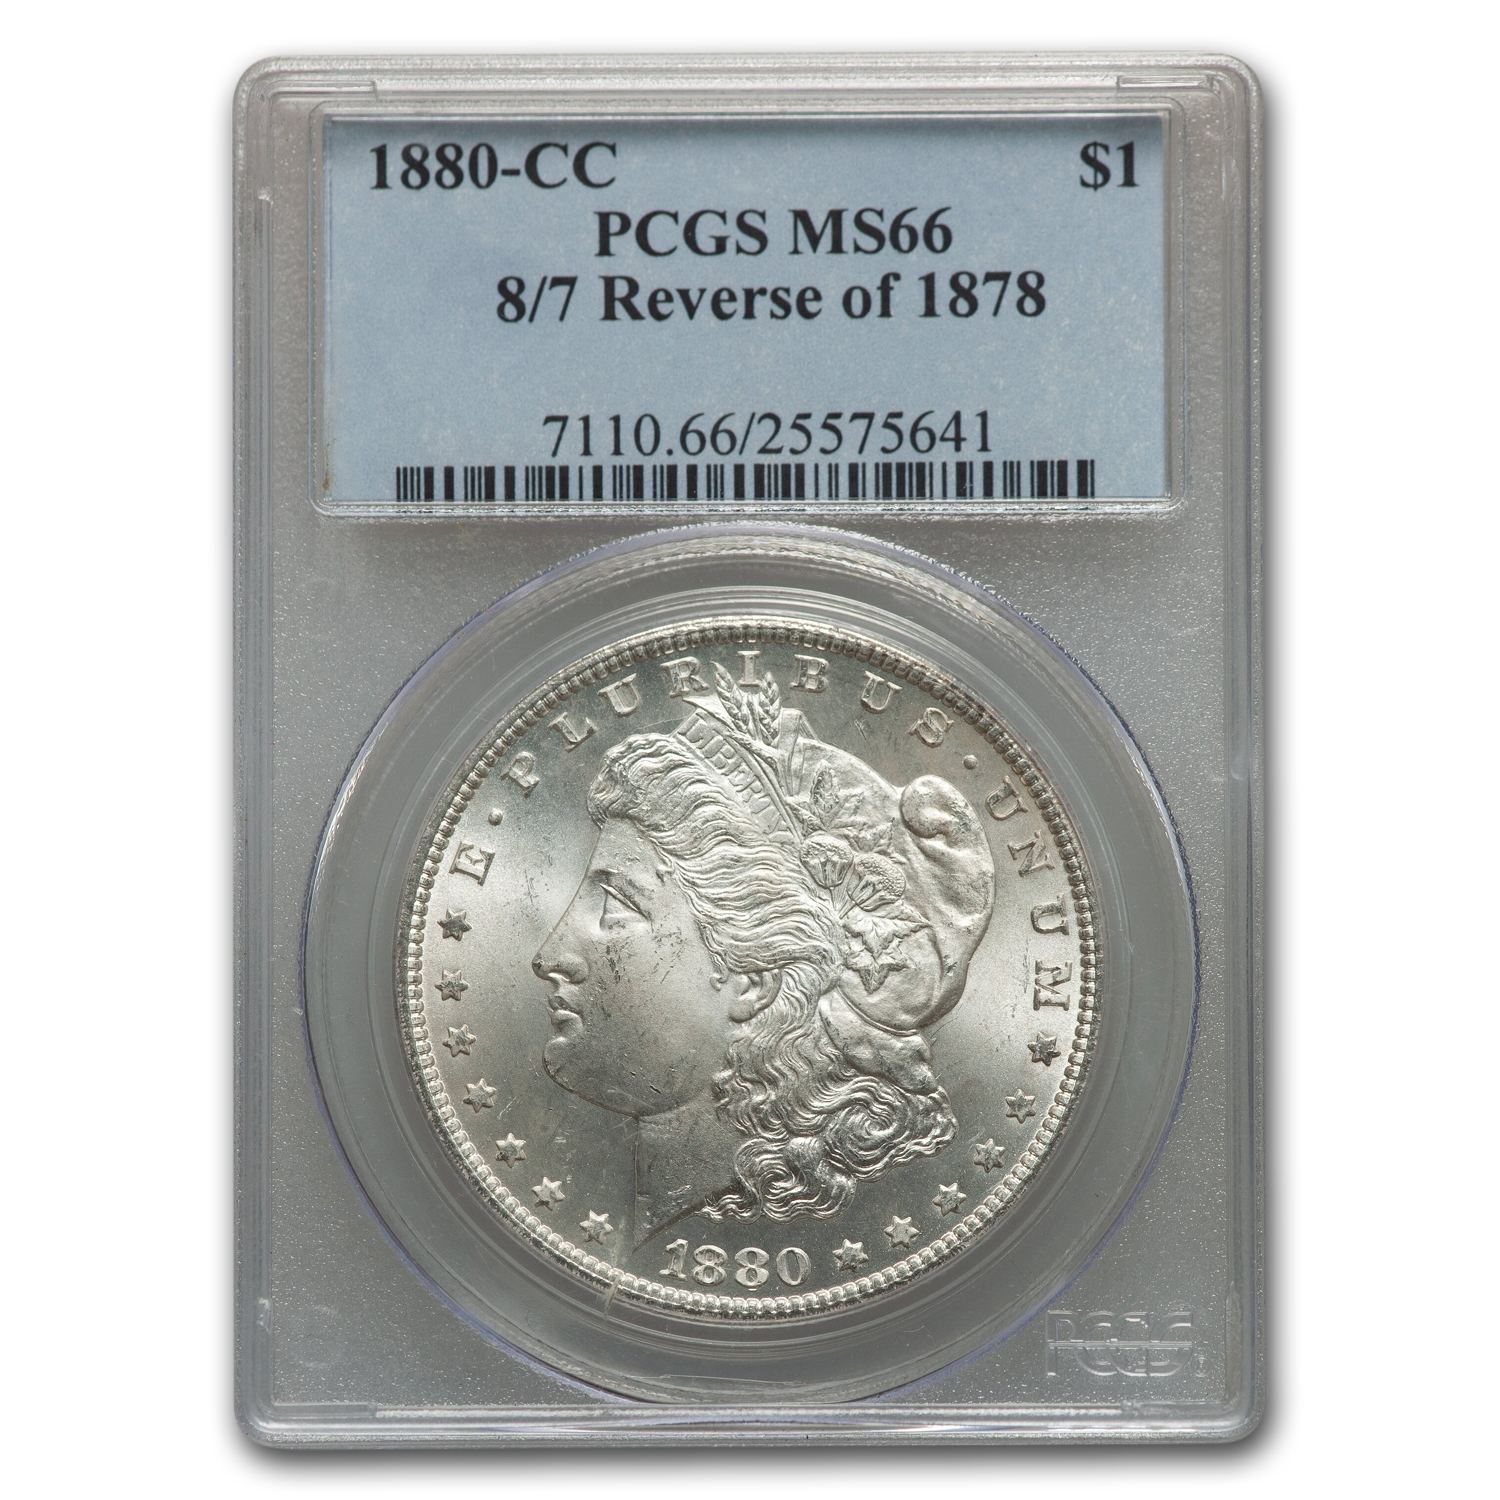 1880-CC Morgan Dollar 8/7 Rev of 78 MS-66 PCGS